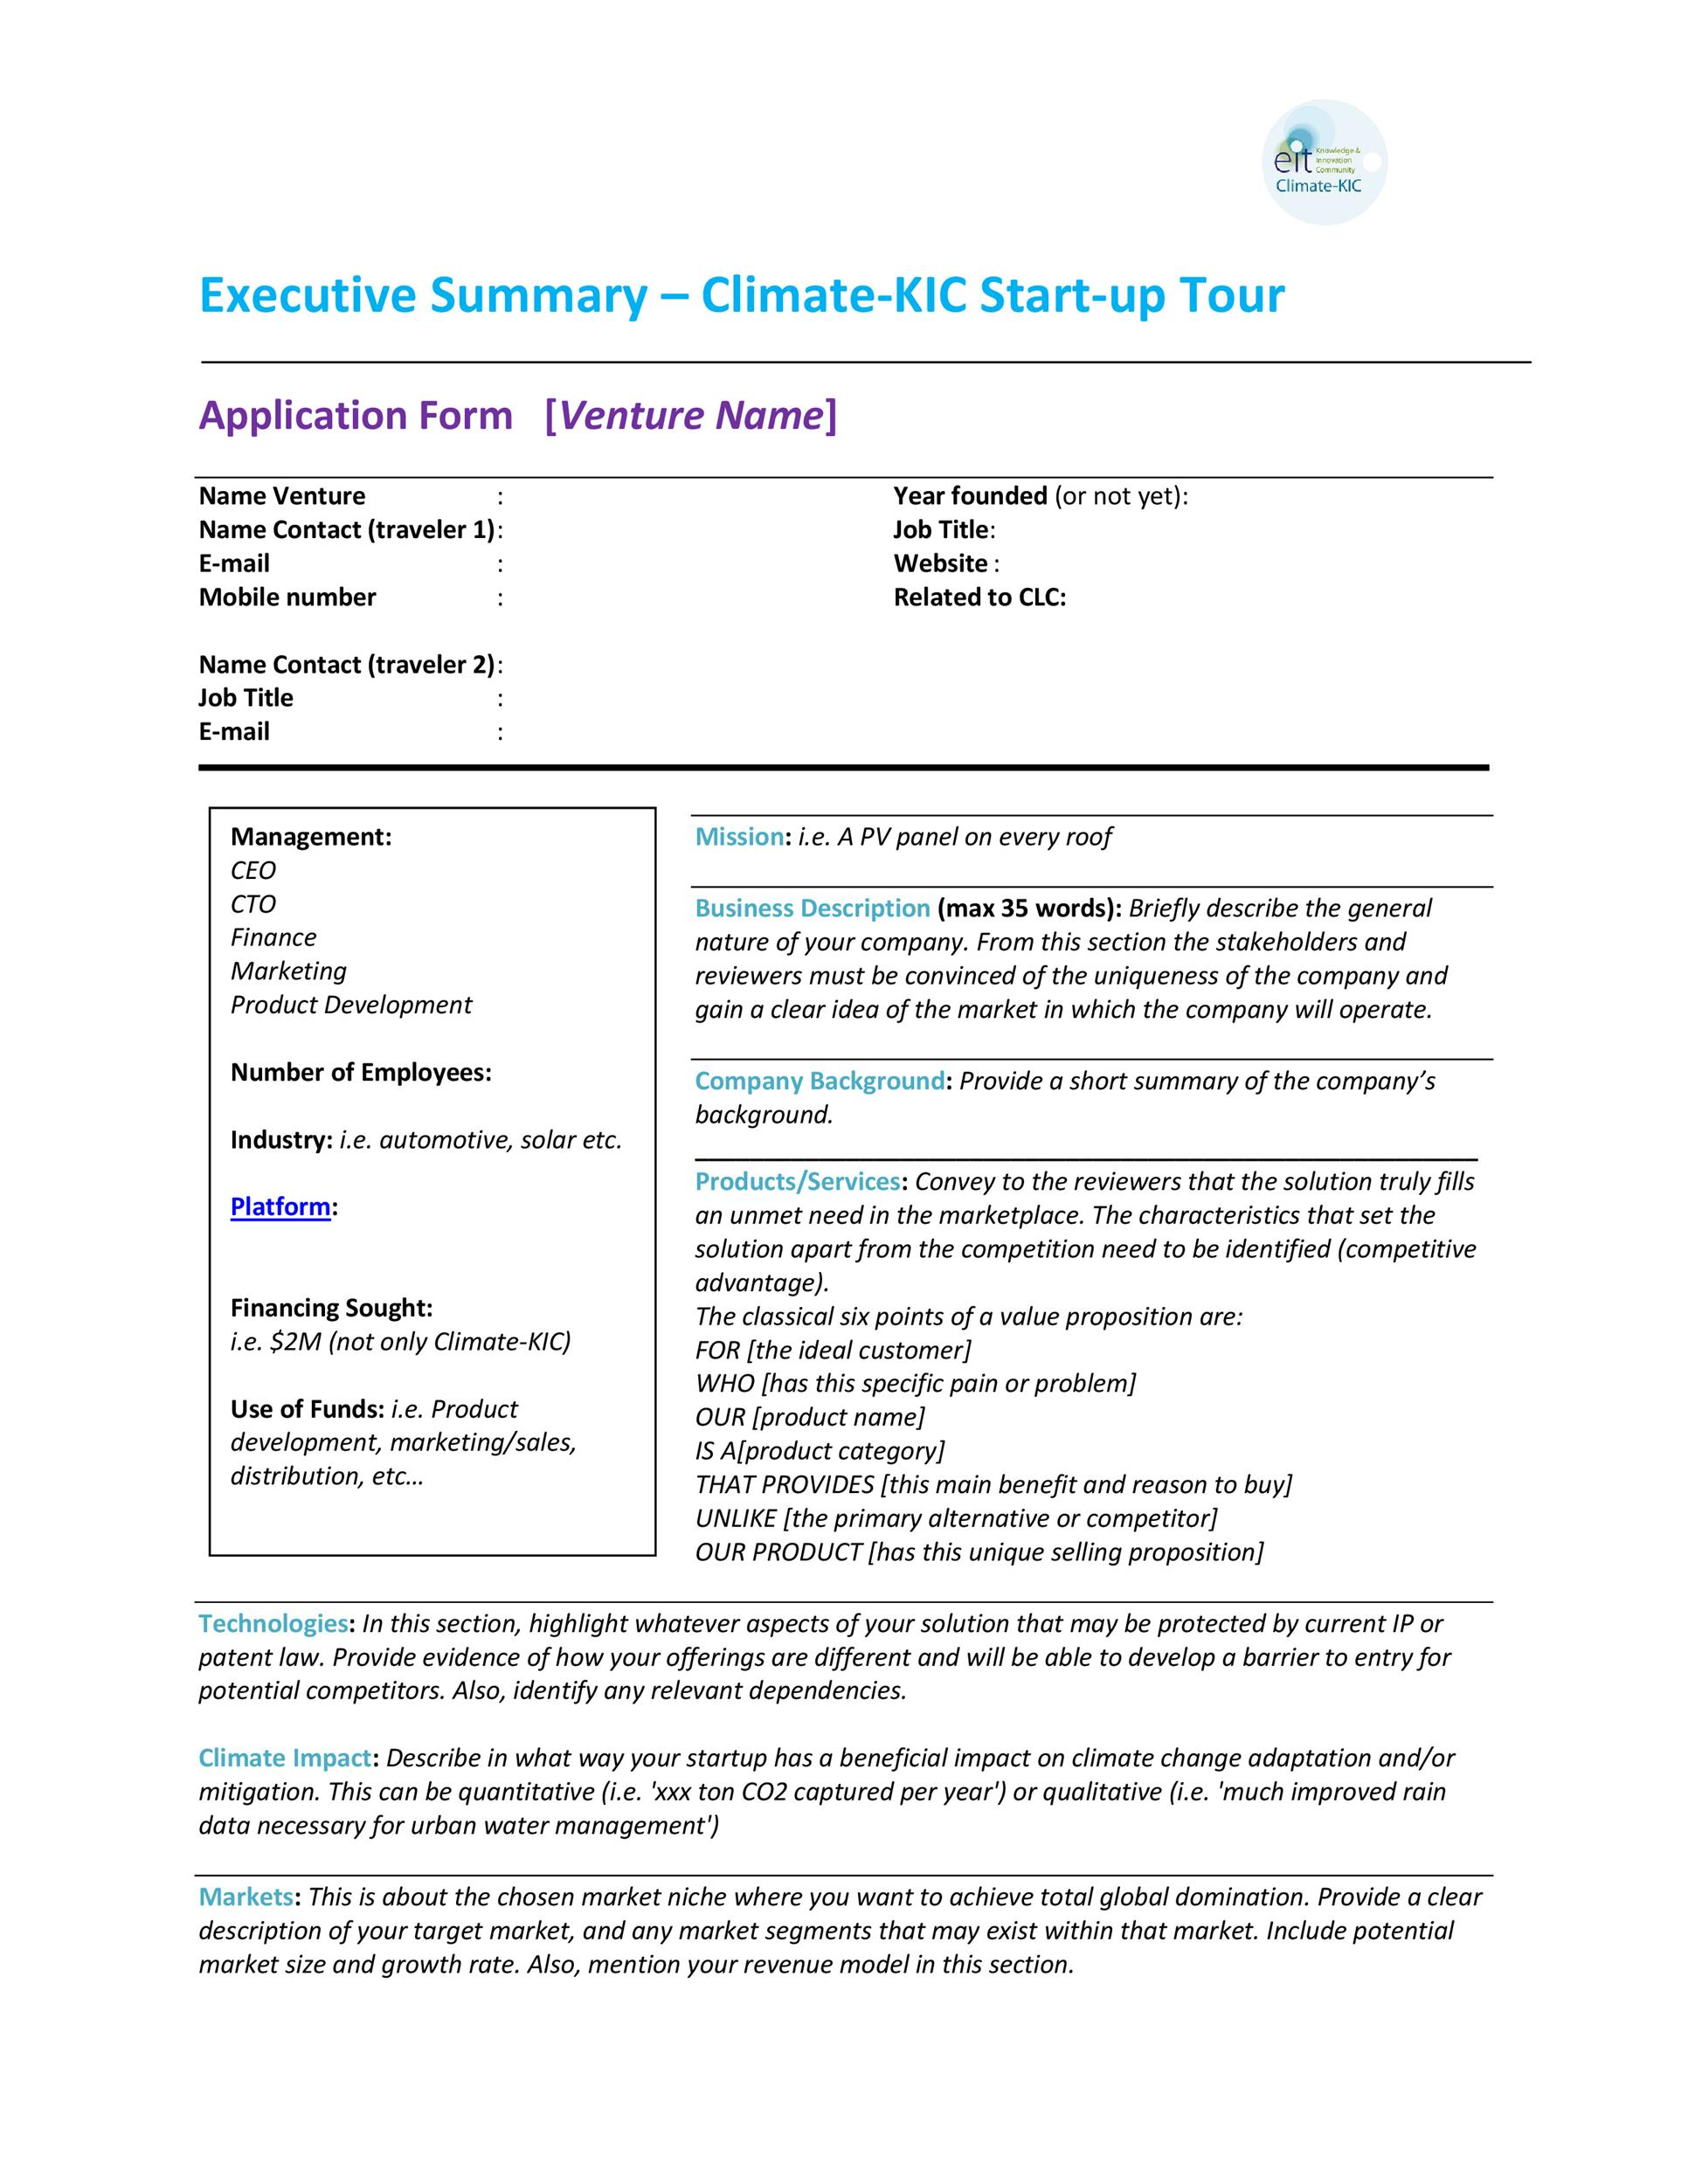 Executive Summary Template 29